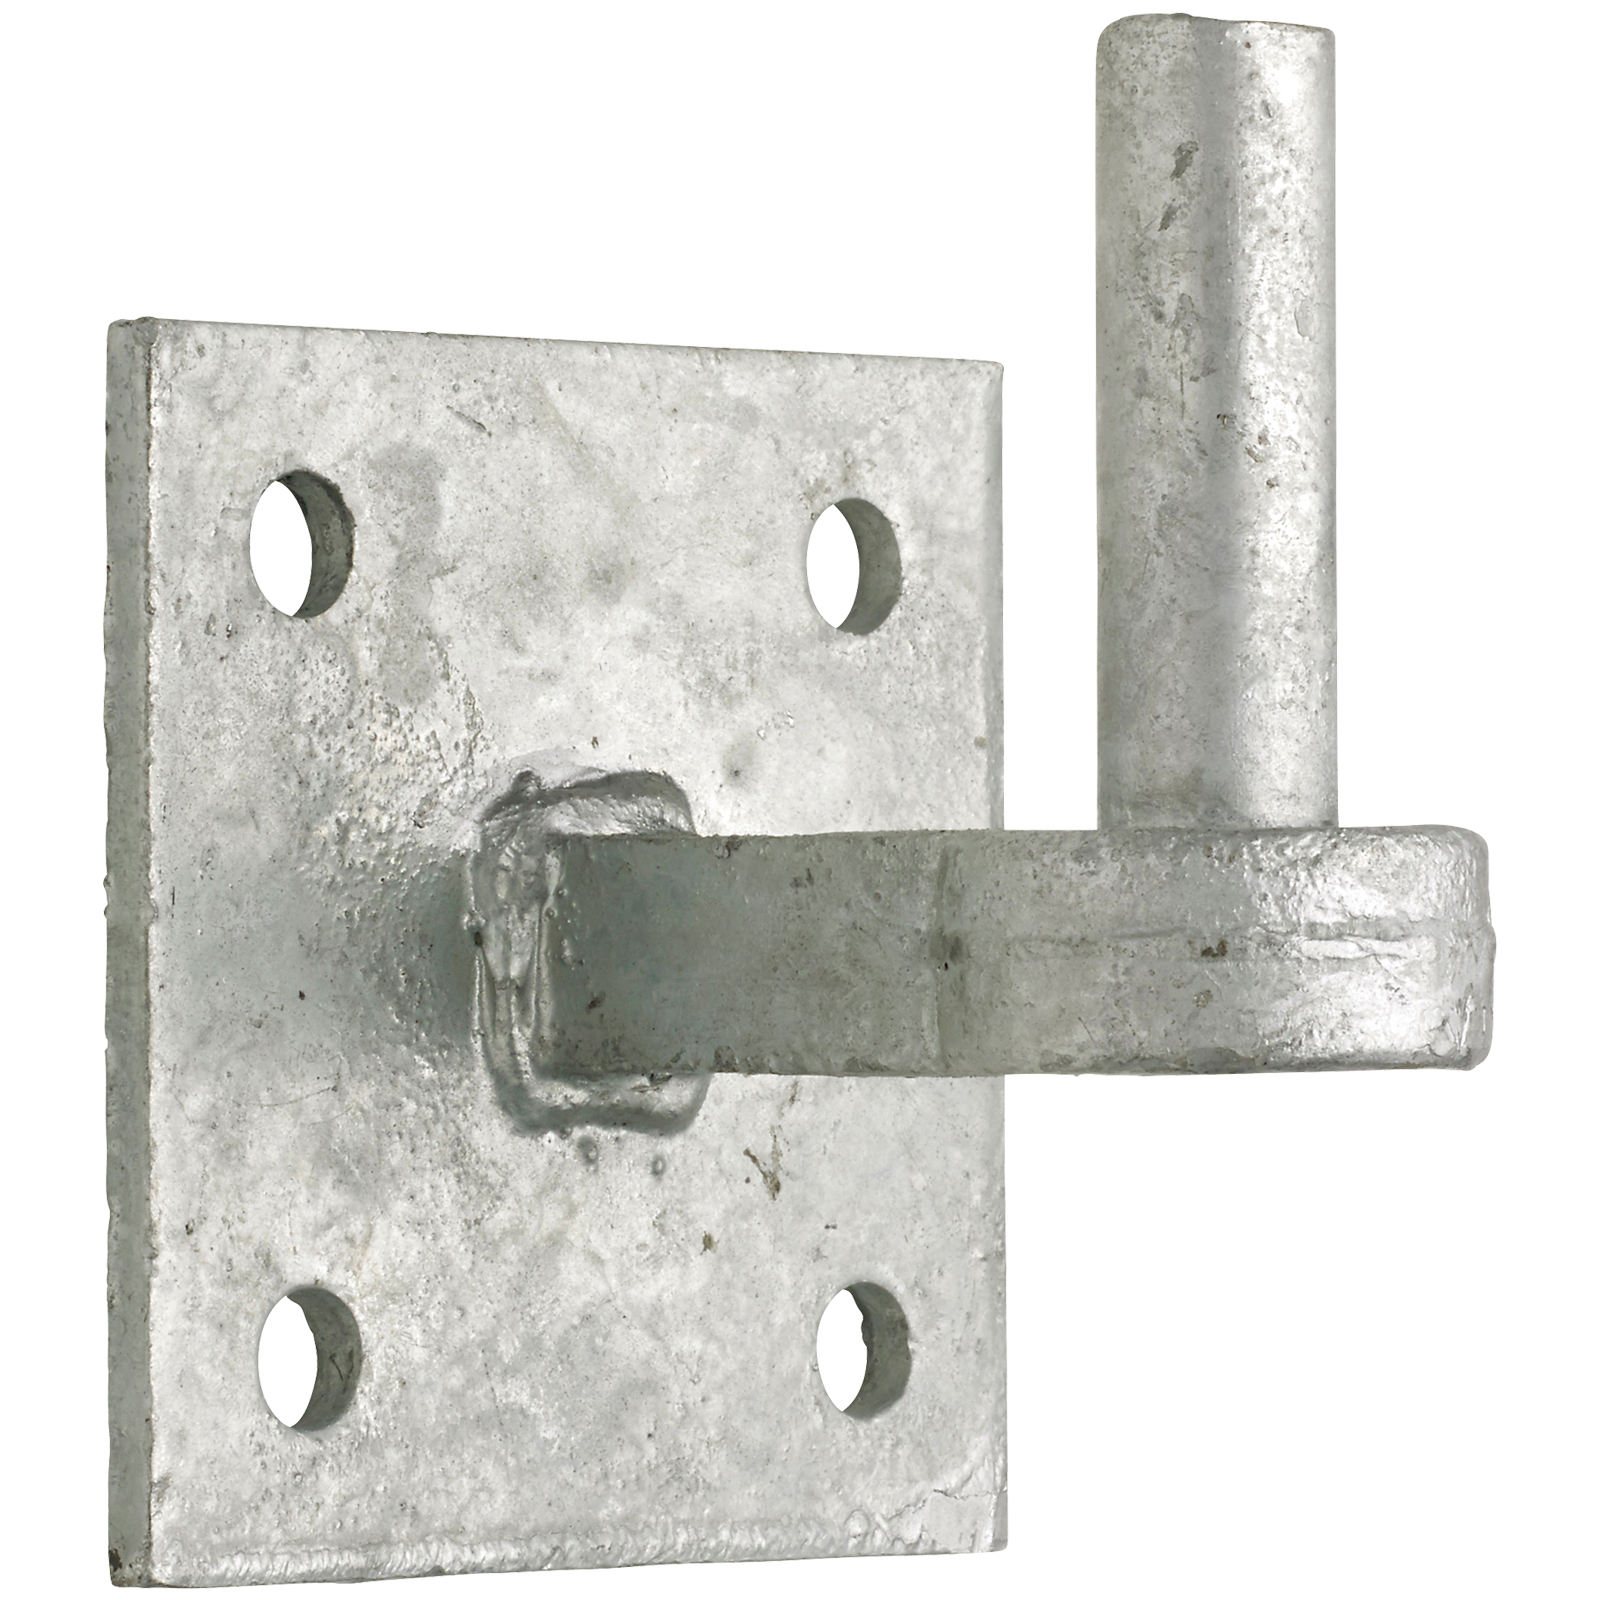 Galvanised hook on plate. 4 inches by 4 inches or 100cm by 100cm.